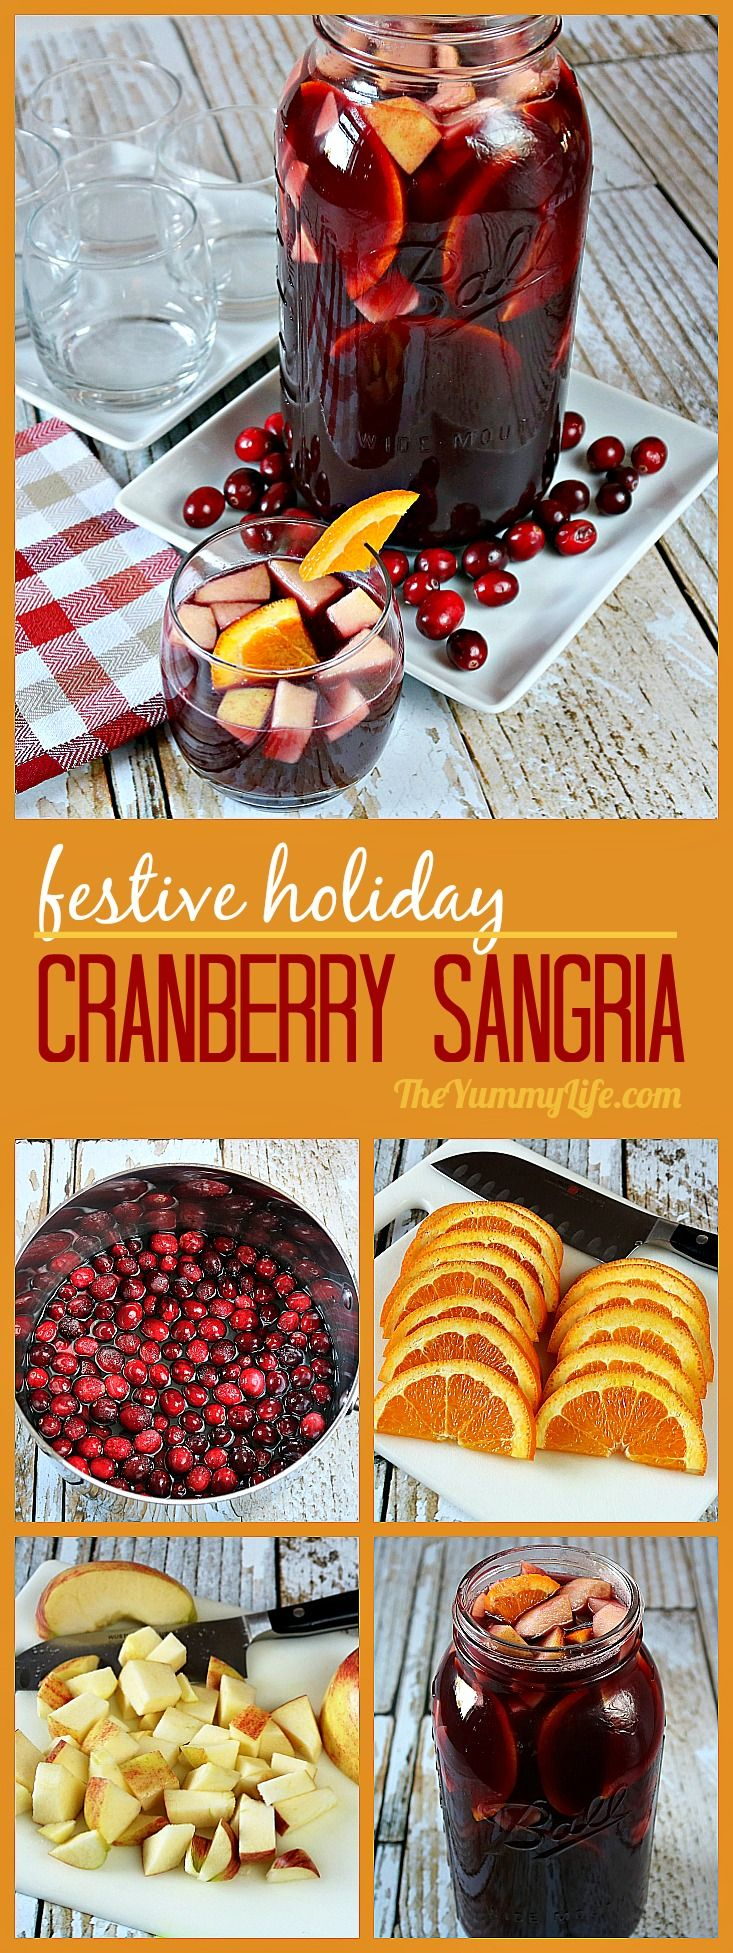 An easy, festive, fruity cocktail-type recipe that is perfect for holiday meals and parties. A delicious, flavorful blend of wine and brandy with cranberries, pomegranates, apples and oranges. Make-ahead convenience, too. #Sangria #Wine #Christmas #Cranberries #Pomegranate #Fruity